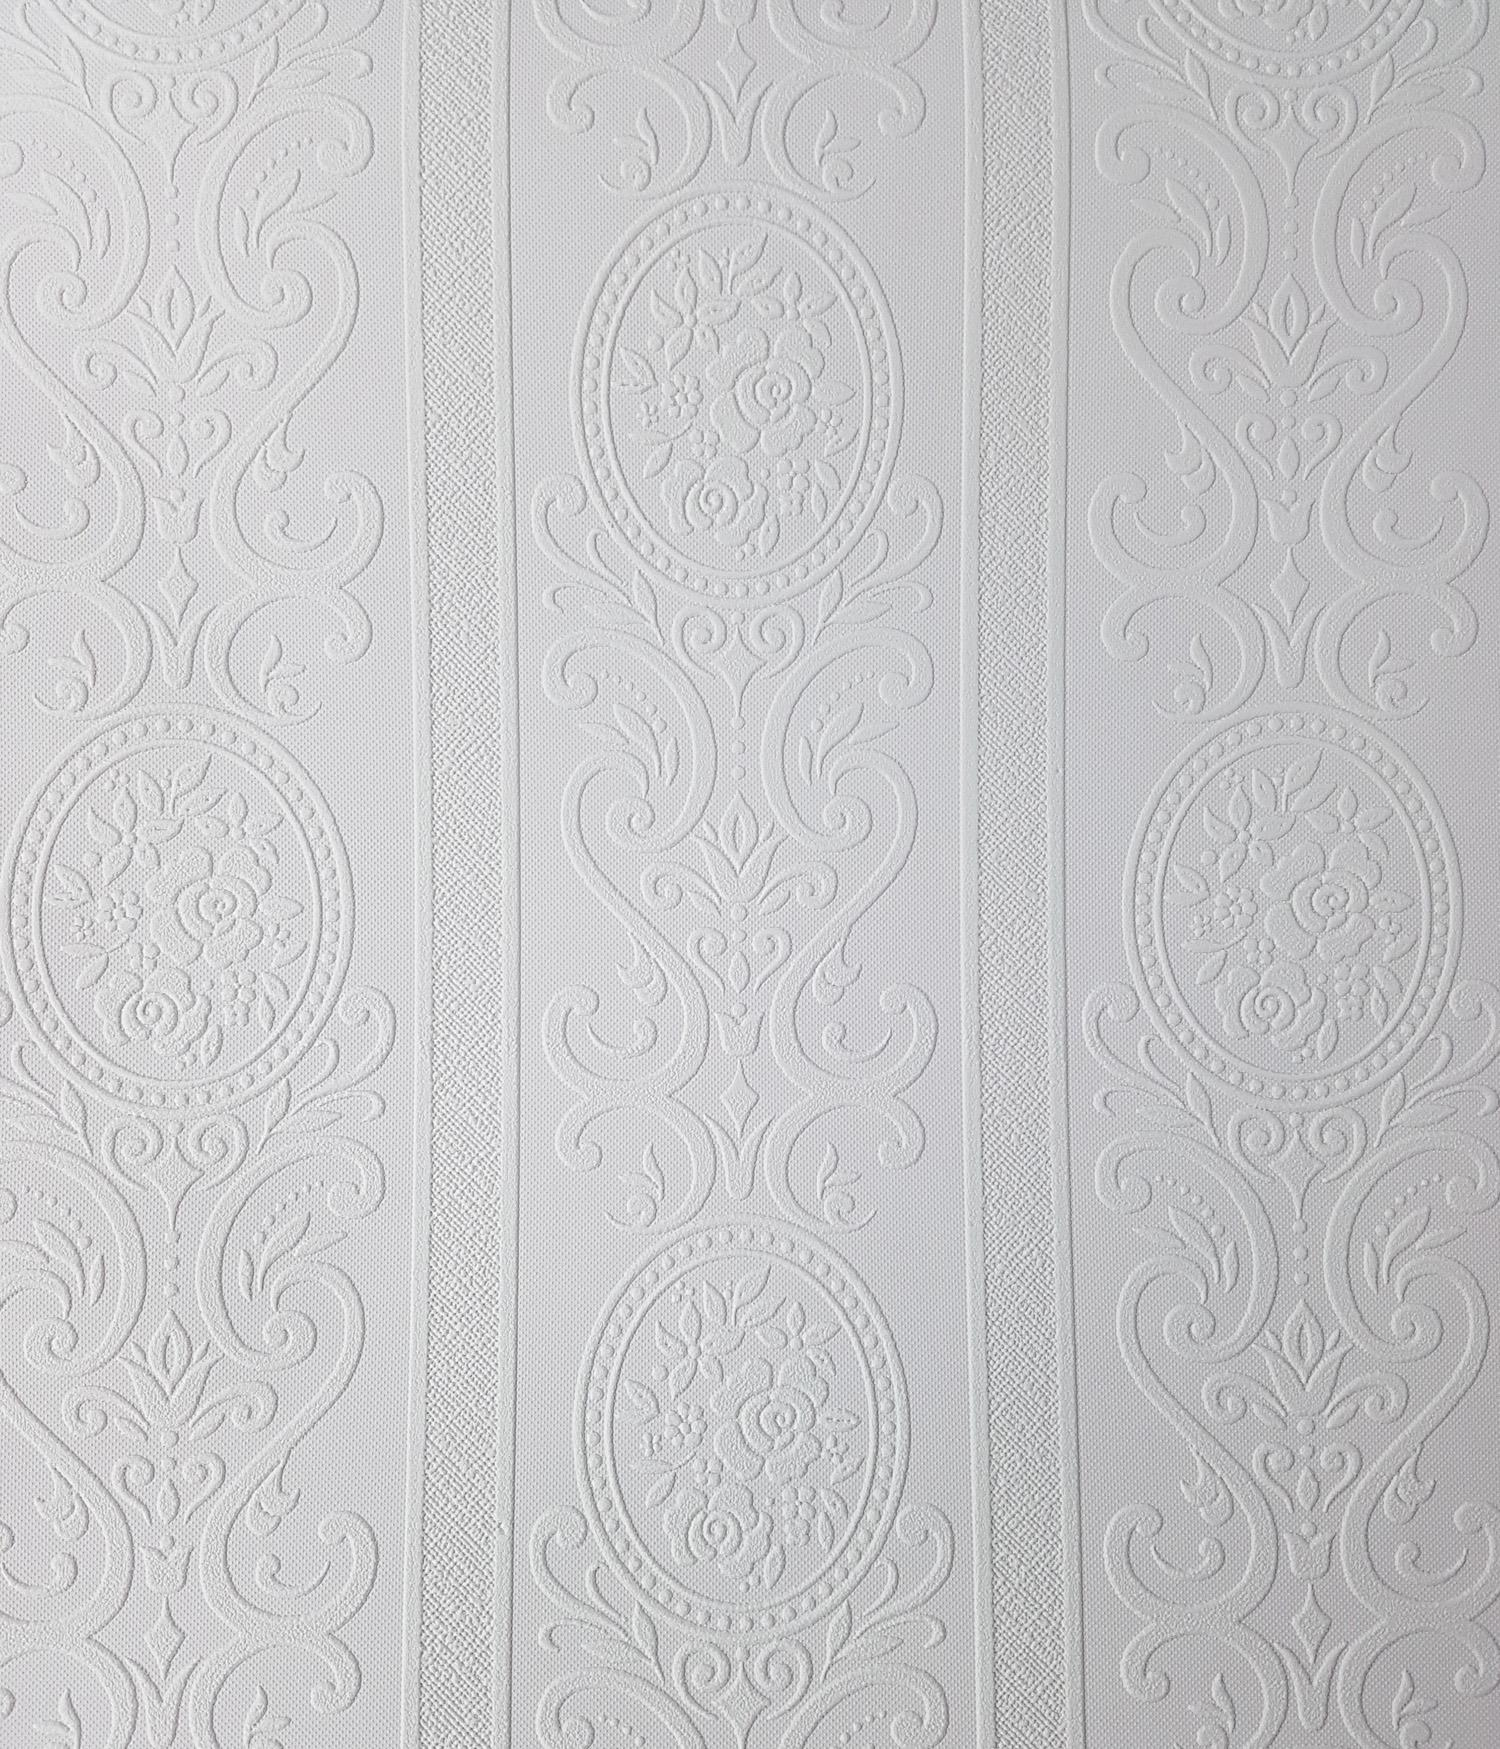 Details About Anaglypta Louisa White Paintable Floral Stripe Wallpaper Vinyl Embossed Textured